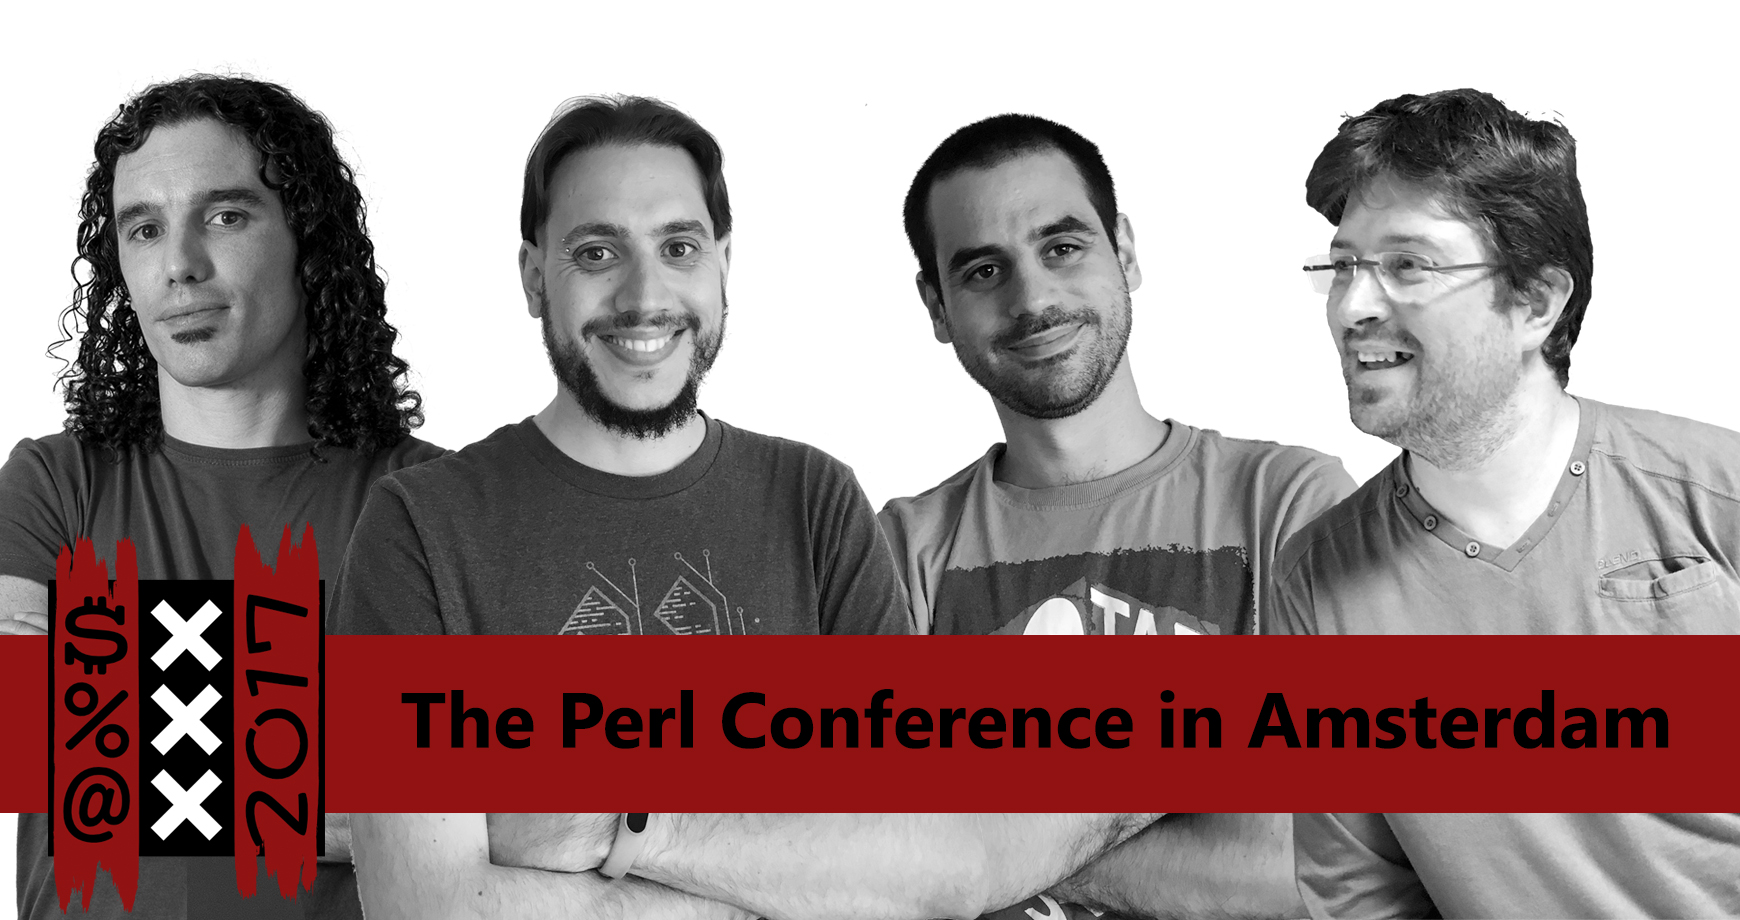 The Perl Conference in Amsterdam